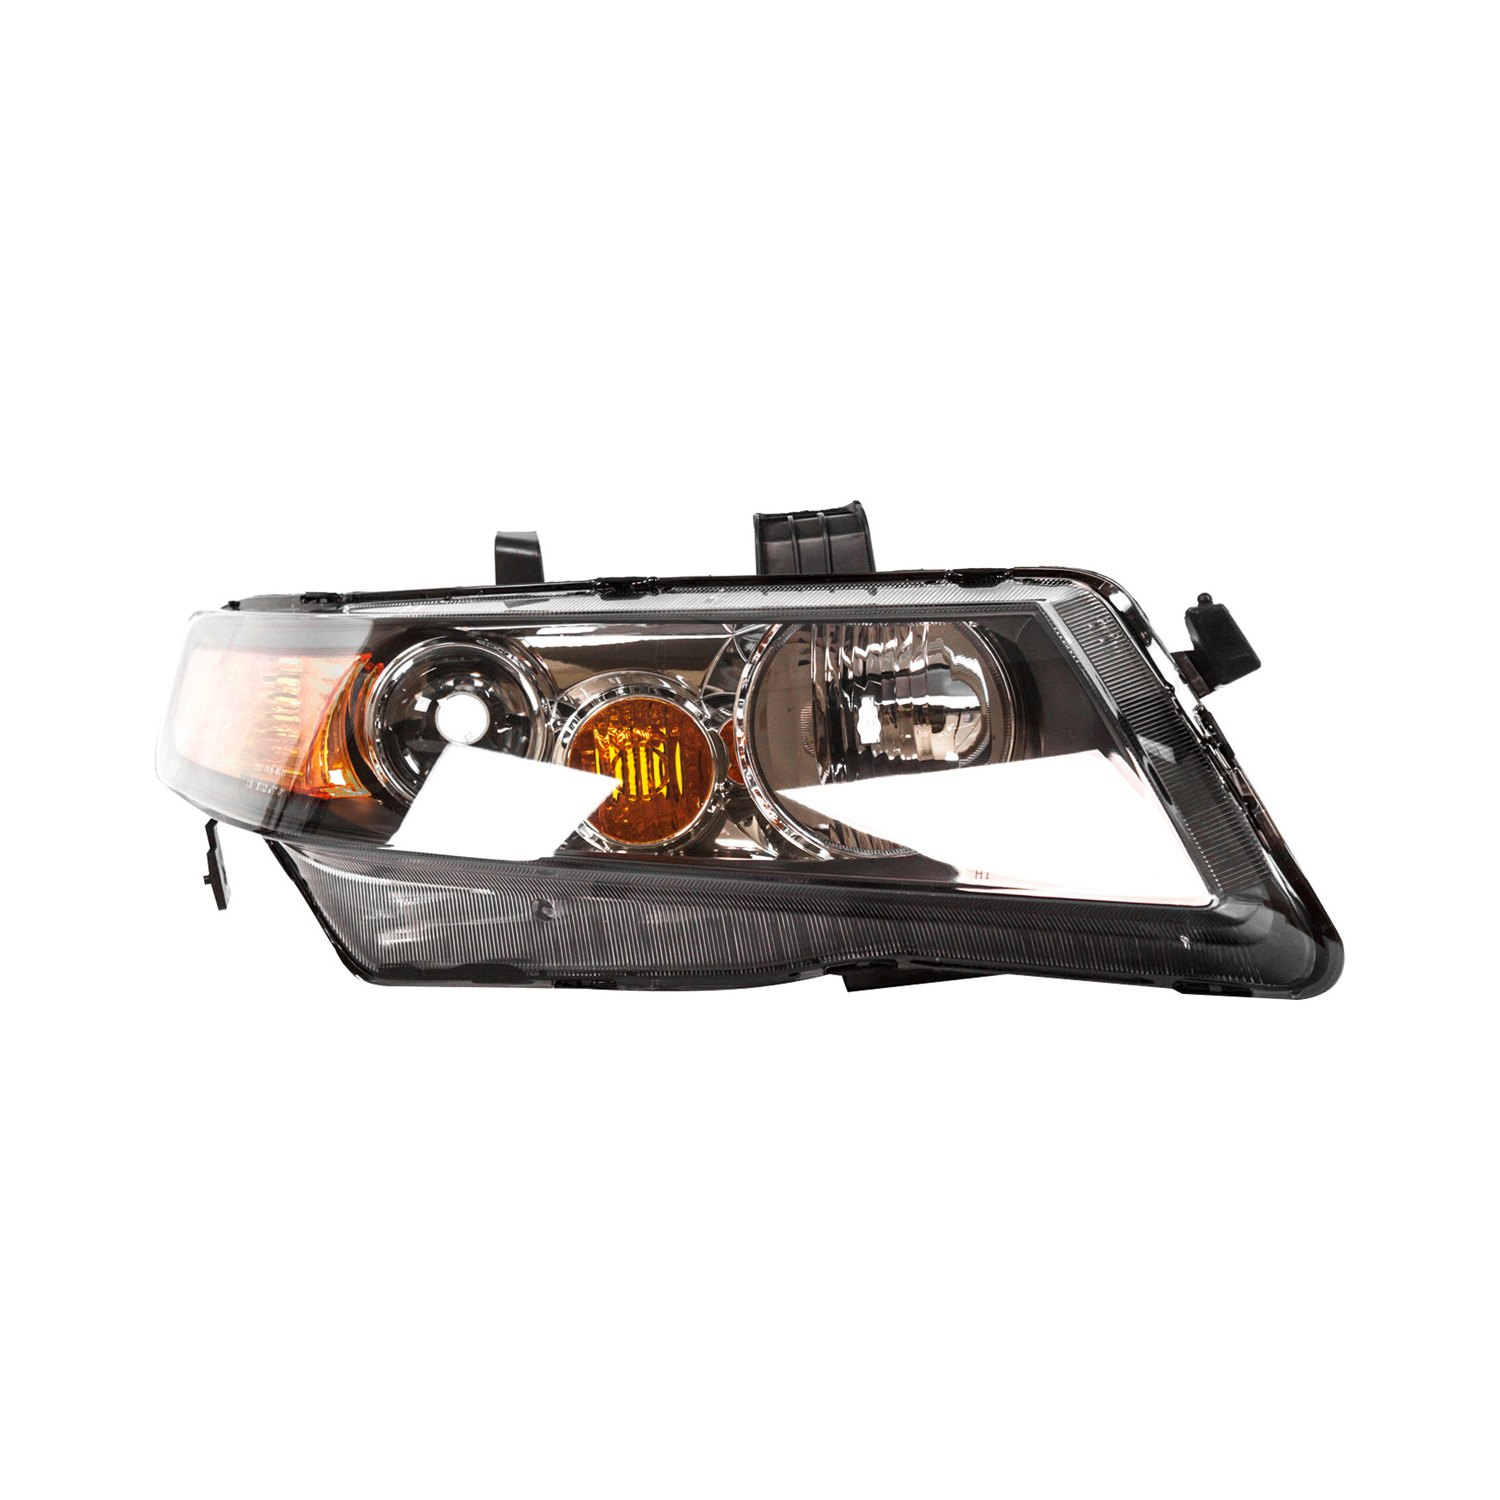 Acura TSX 2006-2008 Replacement Headlight